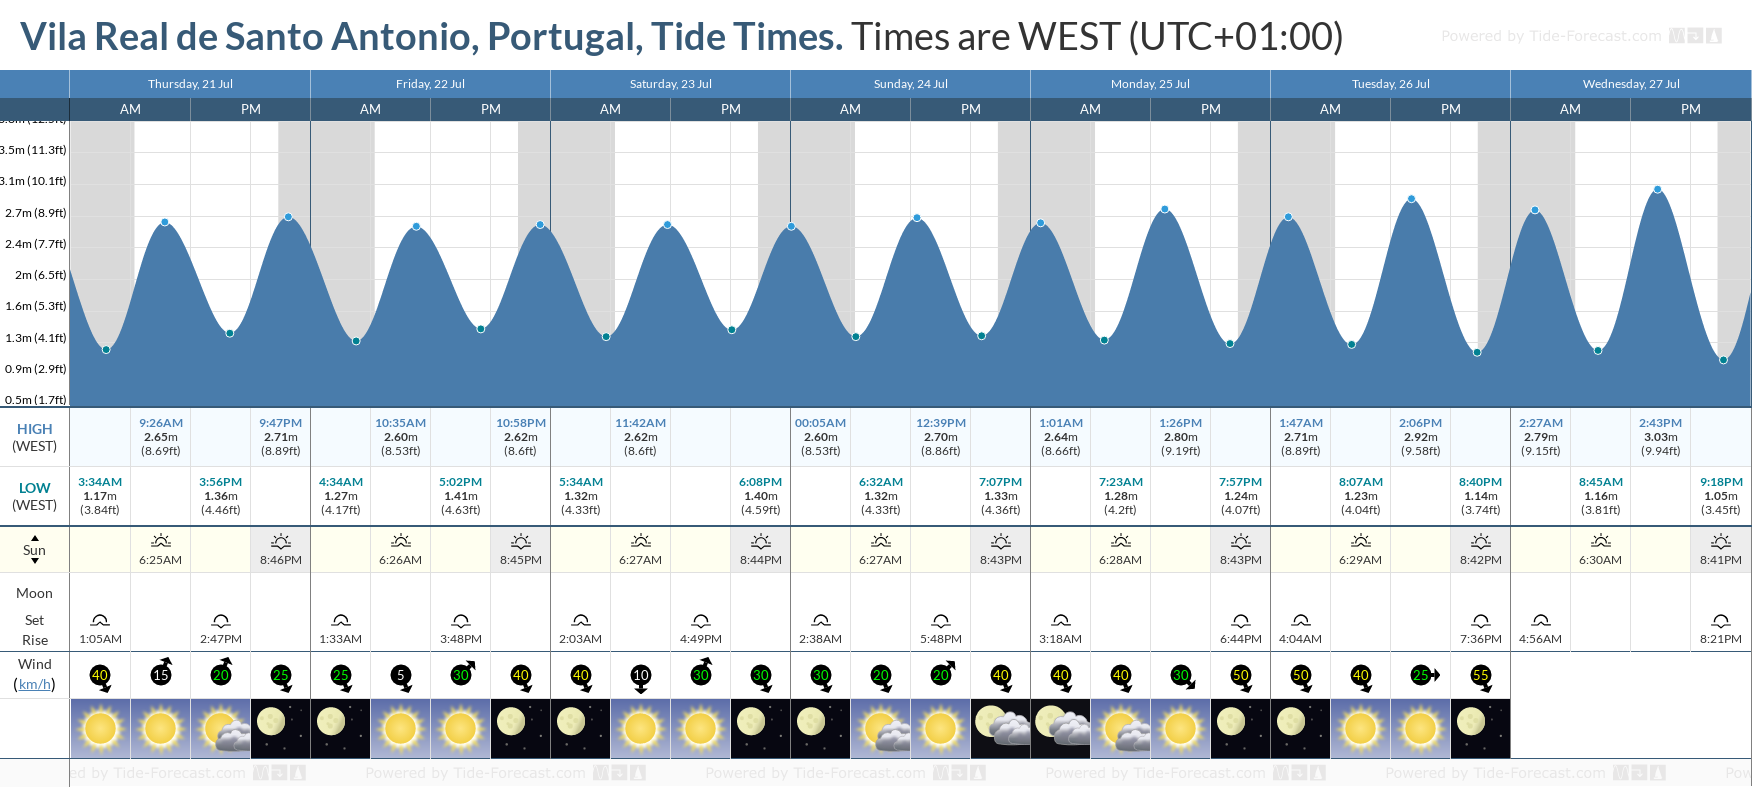 Vila Real de Santo Antonio, Portugal Tide Chart including high and low tide tide times for the next 7 days